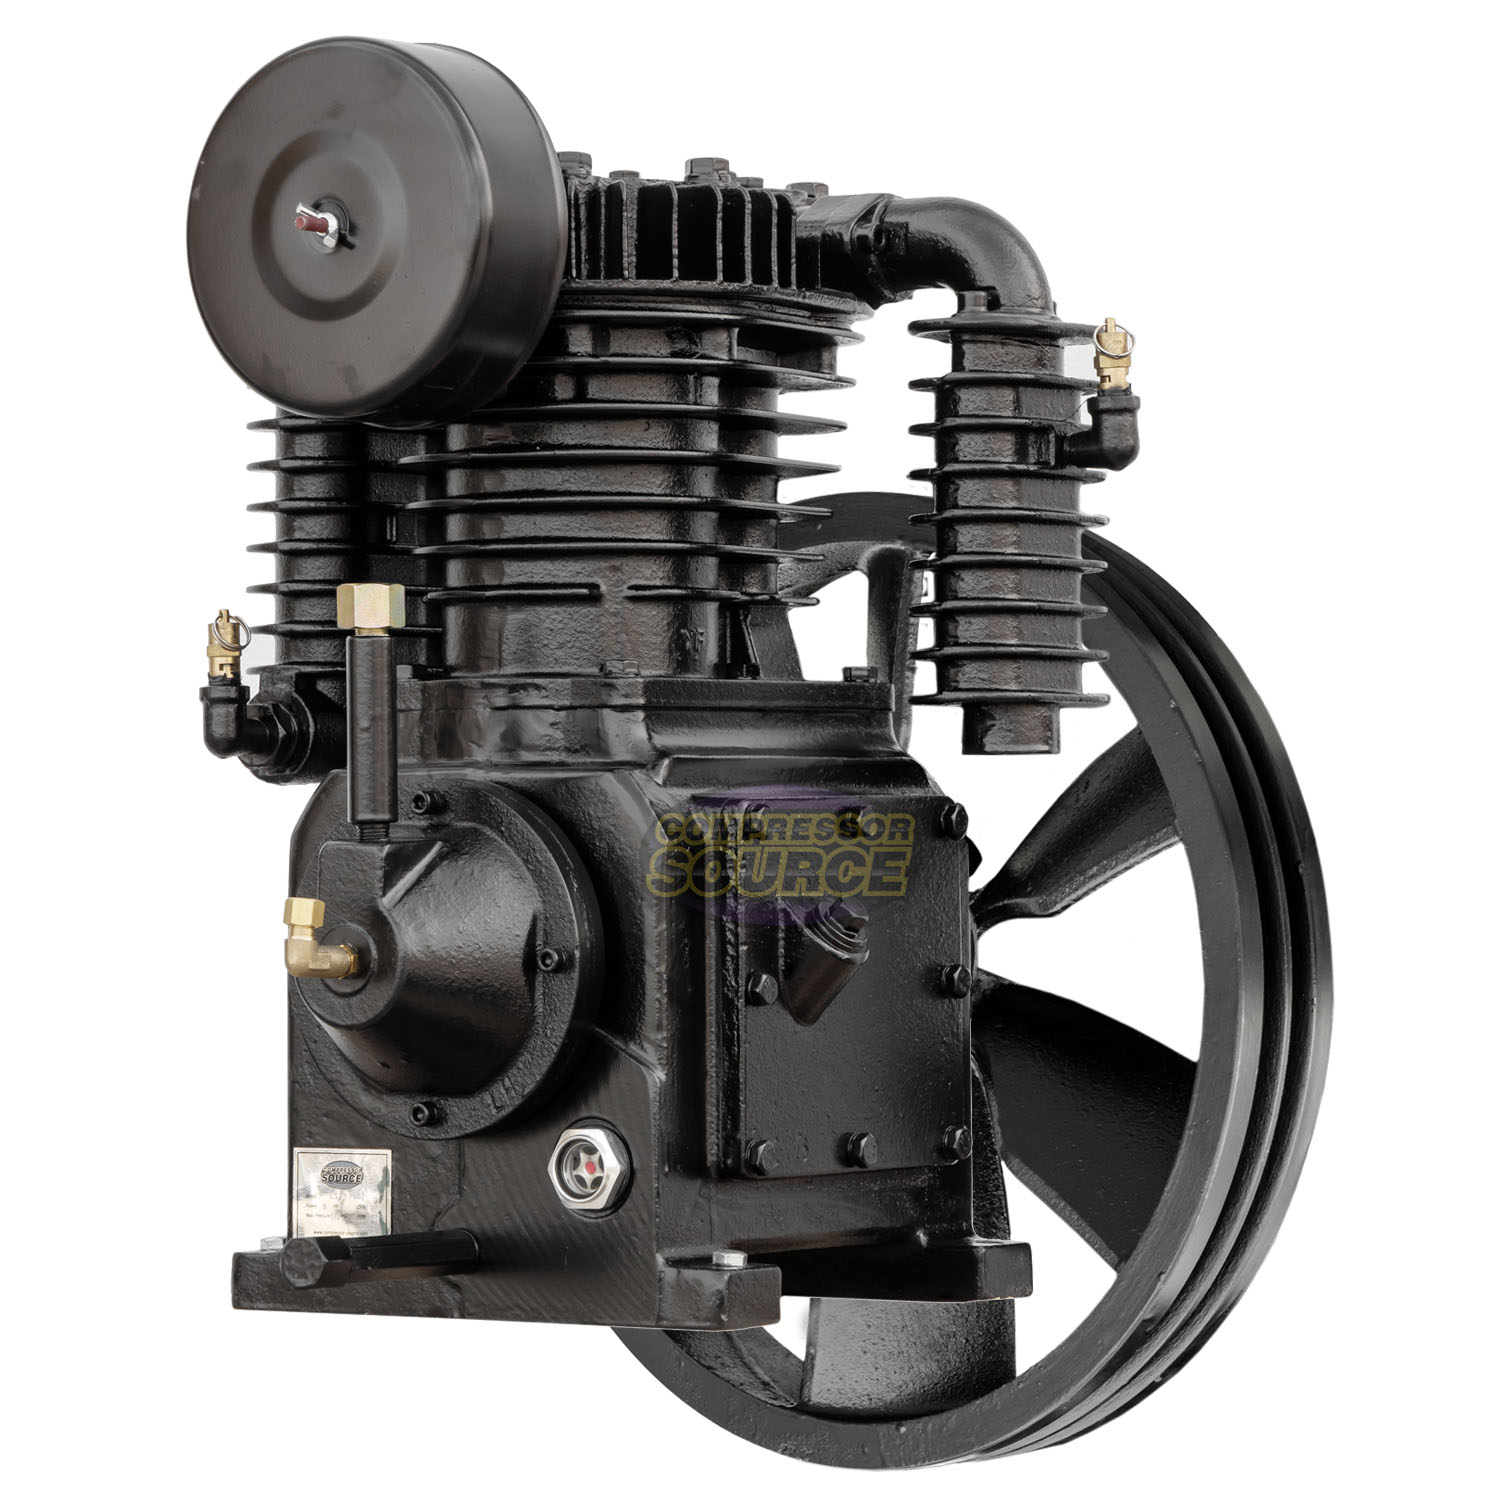 Replacement Air Compressor Pump >> 5 Hp Replacement Air Compressor Pump Two Stage 2 Cylinder 19 Scfm